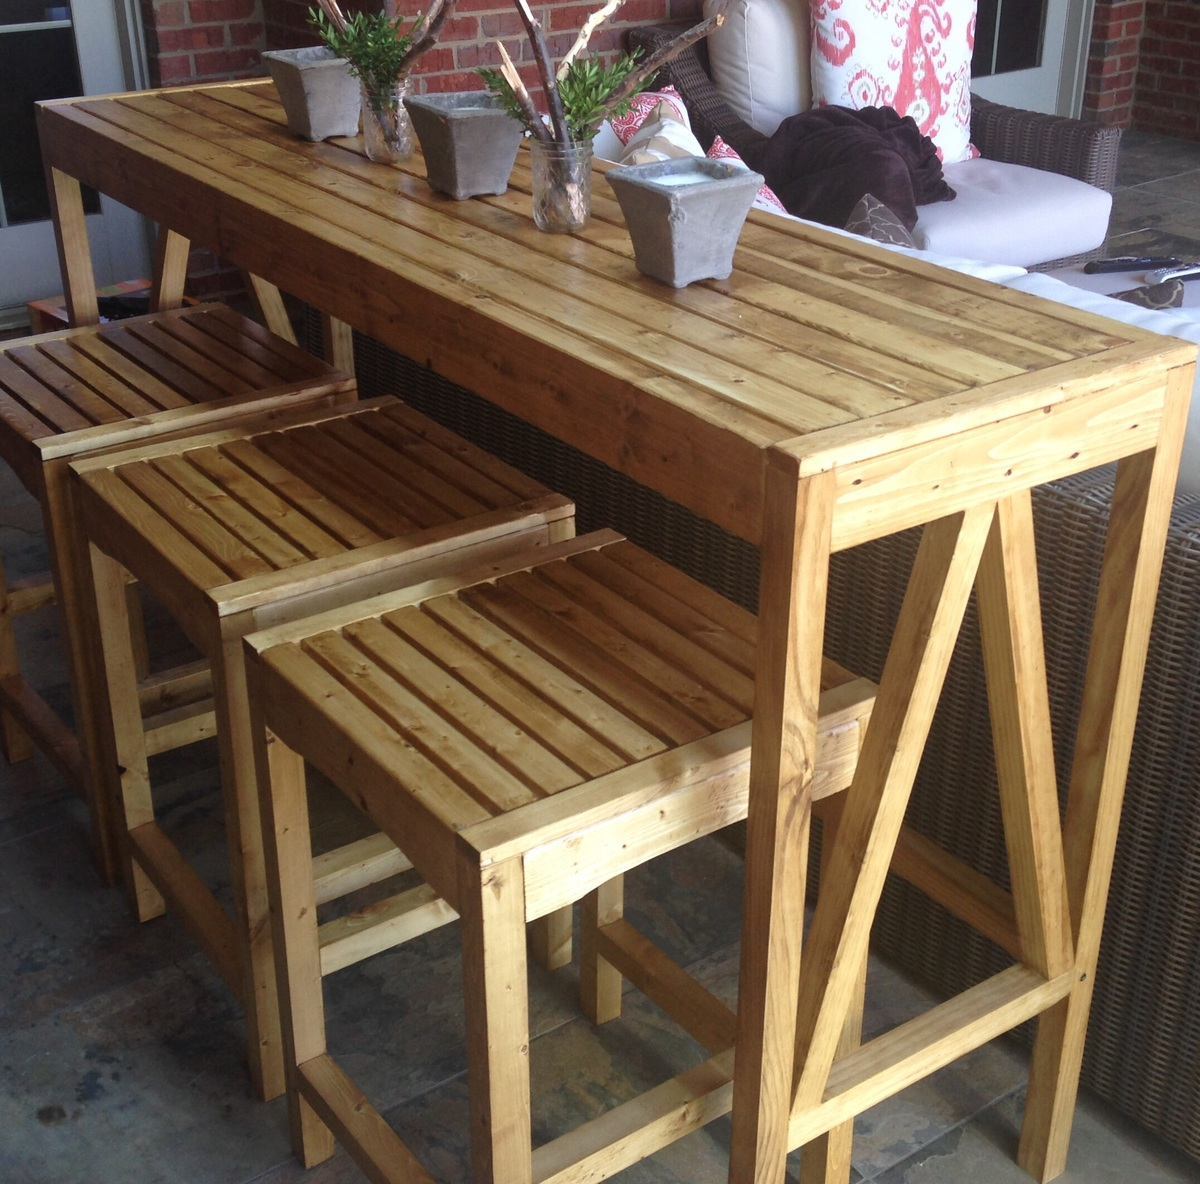 Outdoor Bar Table And Chairs Ana White Sutton Custom Outdoor Bar Stools Diy Projects